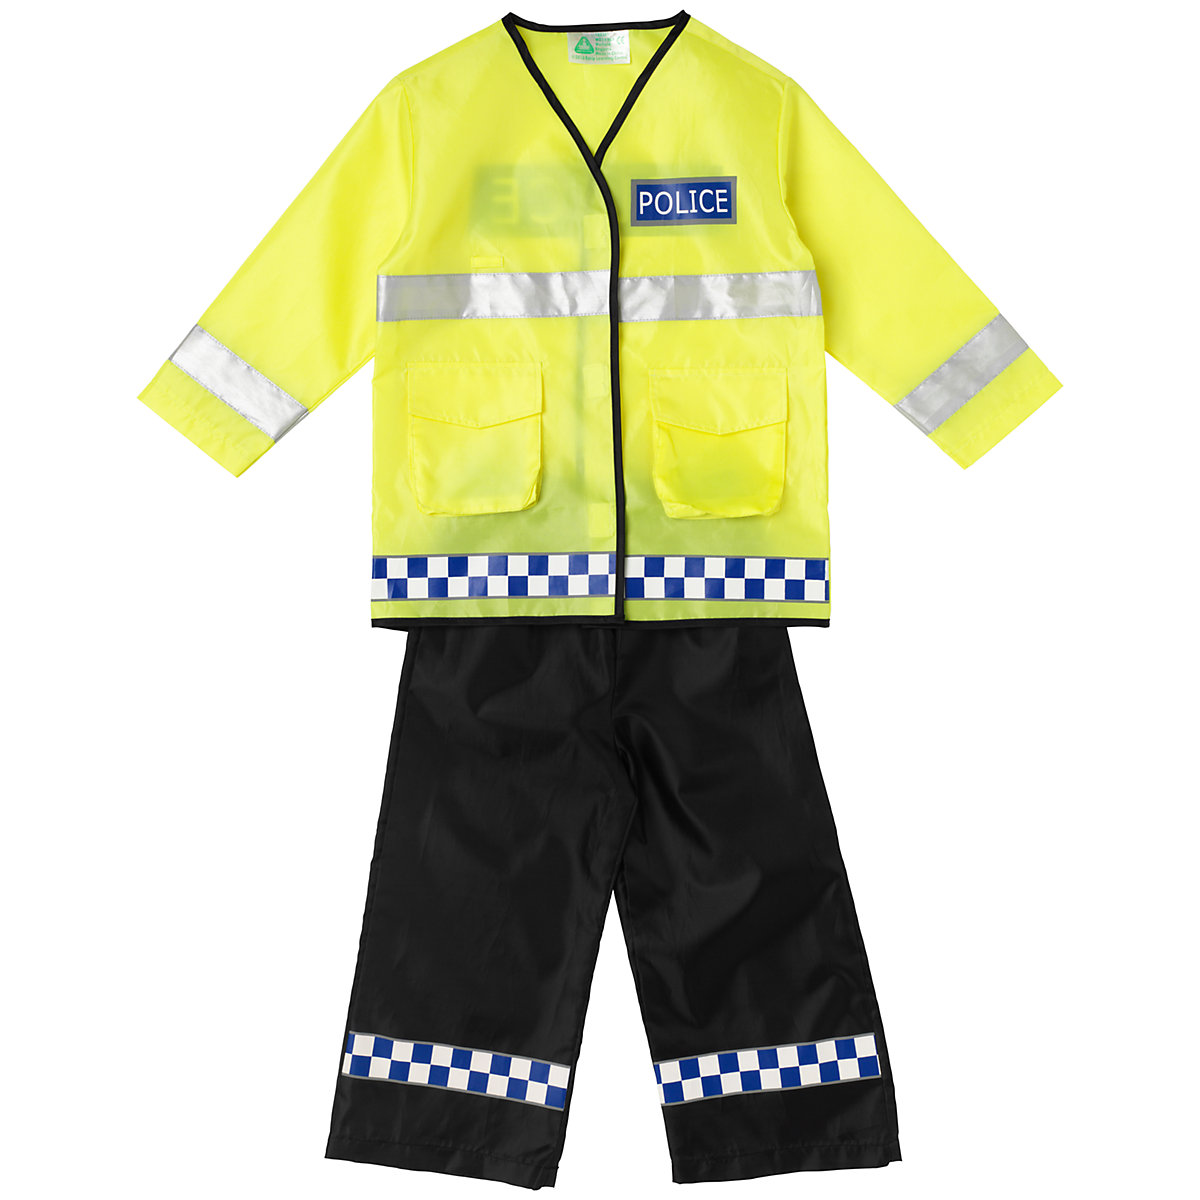 New ELC Boys and Girls Police Outfit Toy From 3 years - Dressing Up Gifts